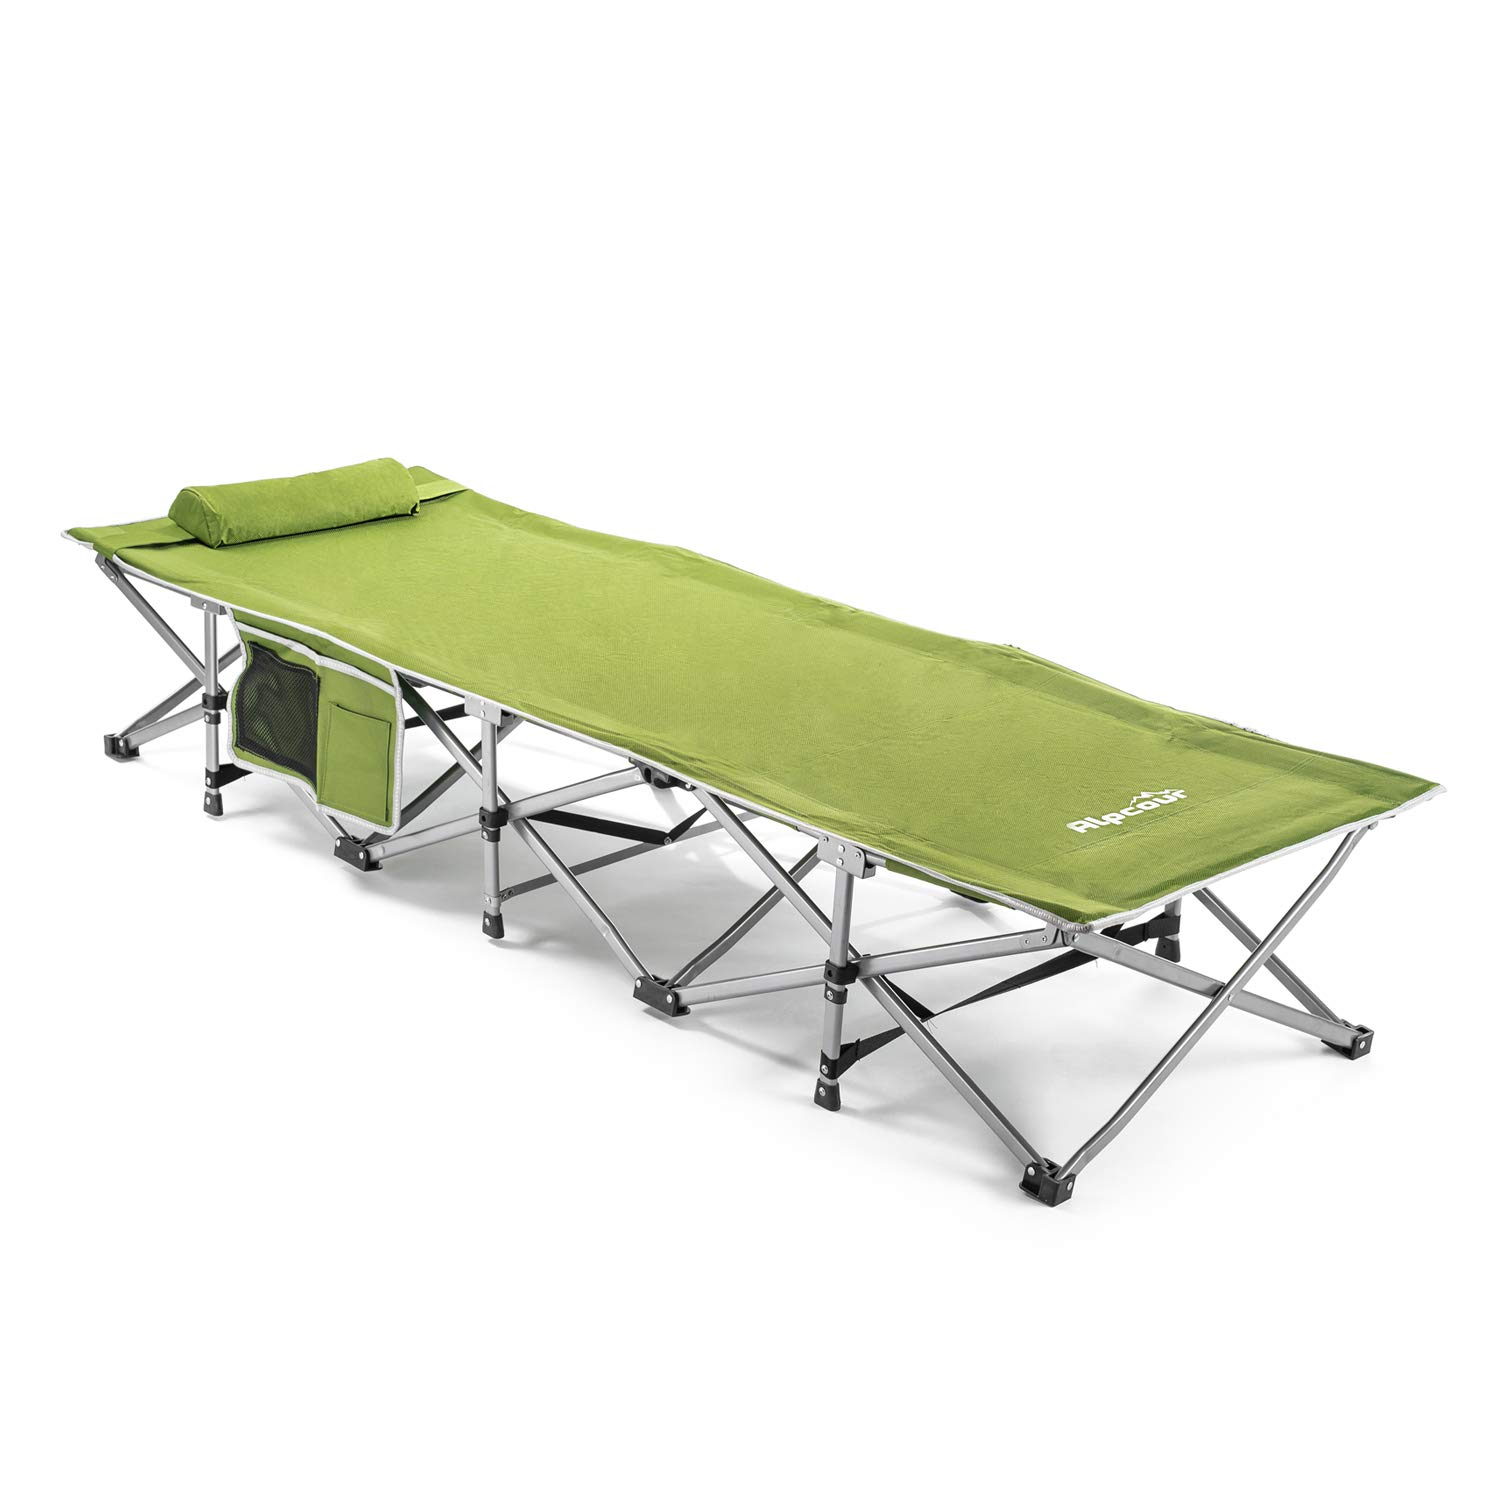 Alpcour Folding Camping Cot – Small-Collapsing Extra Strong Single Person Bed in a Bag w/Pillow for Indoor & Outdoor Use – Deluxe Comfortable Extra Heavy Duty Design Holds Adults & Kids Up to 440 Lbs